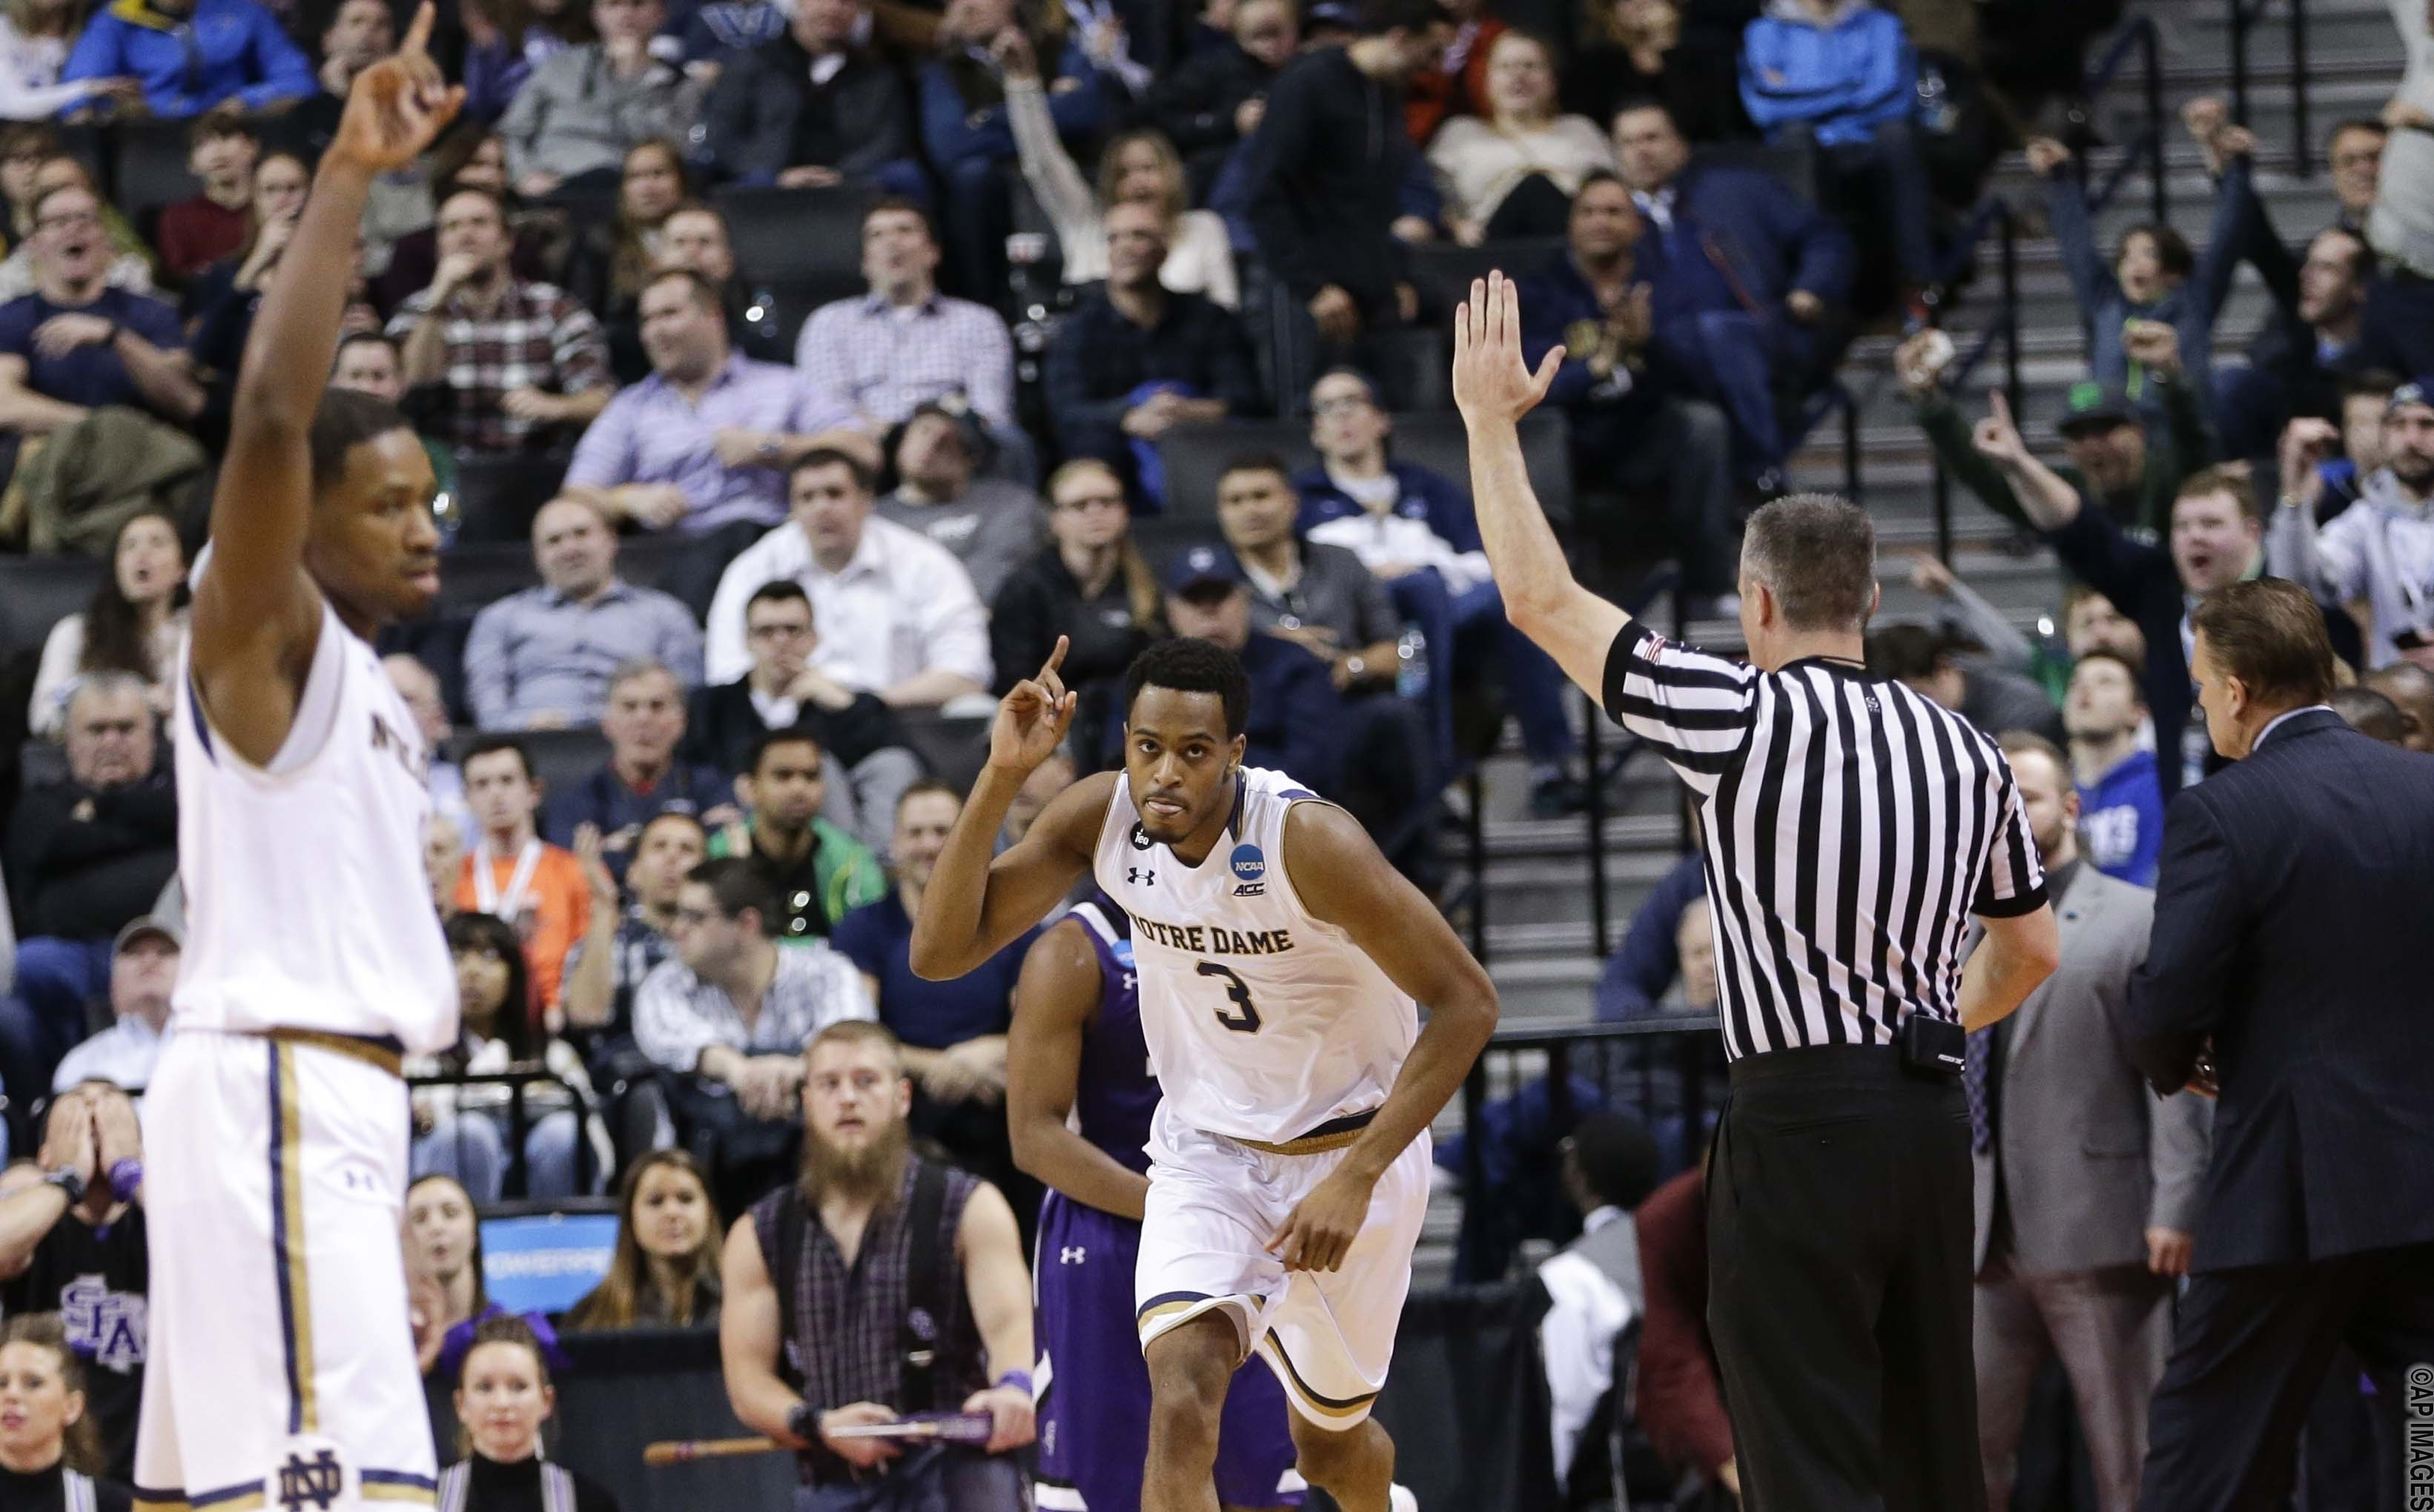 Notre Dame's V.J. Beachem (3) celebrates with teammate Demetrius Jackson, left, after making a 3-point basket during the first half of a second-round men's college basketball game against Stephen F. Austin in the NCAA Tournament, Sunday, March 20, 2016, in New York. (AP Photo/Frank Franklin II)